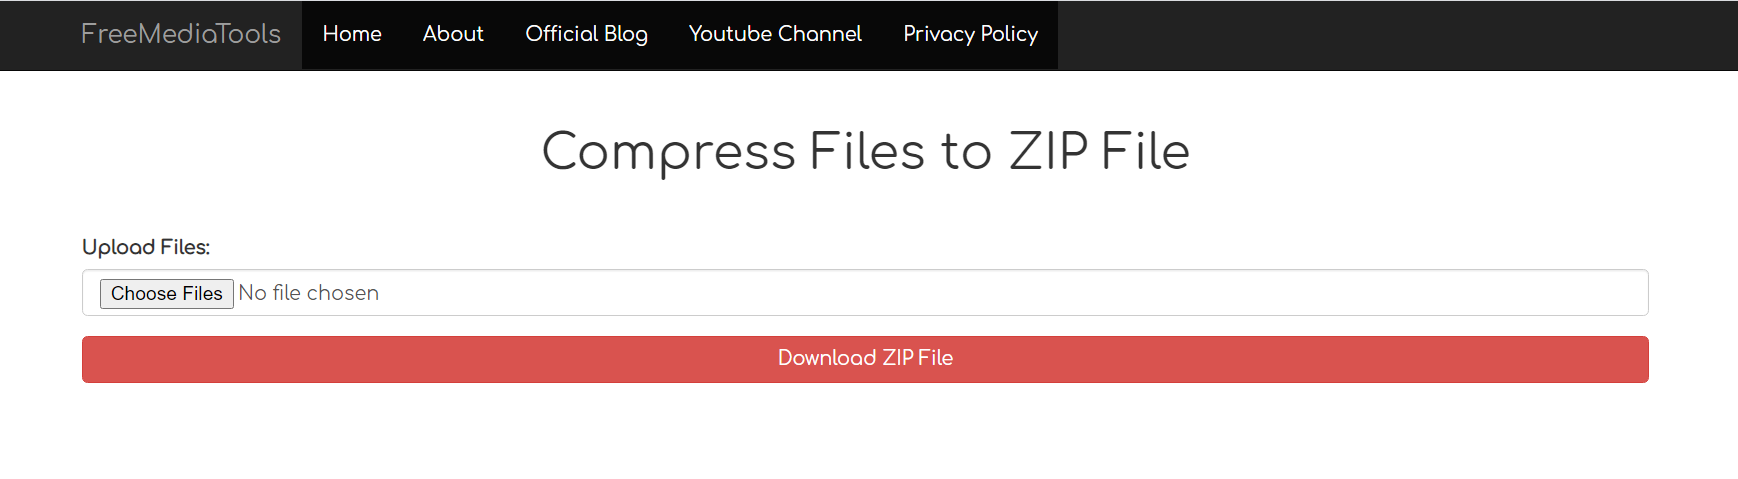 Node.js Express Compress Files and Images to ZIP Files Using adm-zip Library Full Tutorial For Beginners 2020